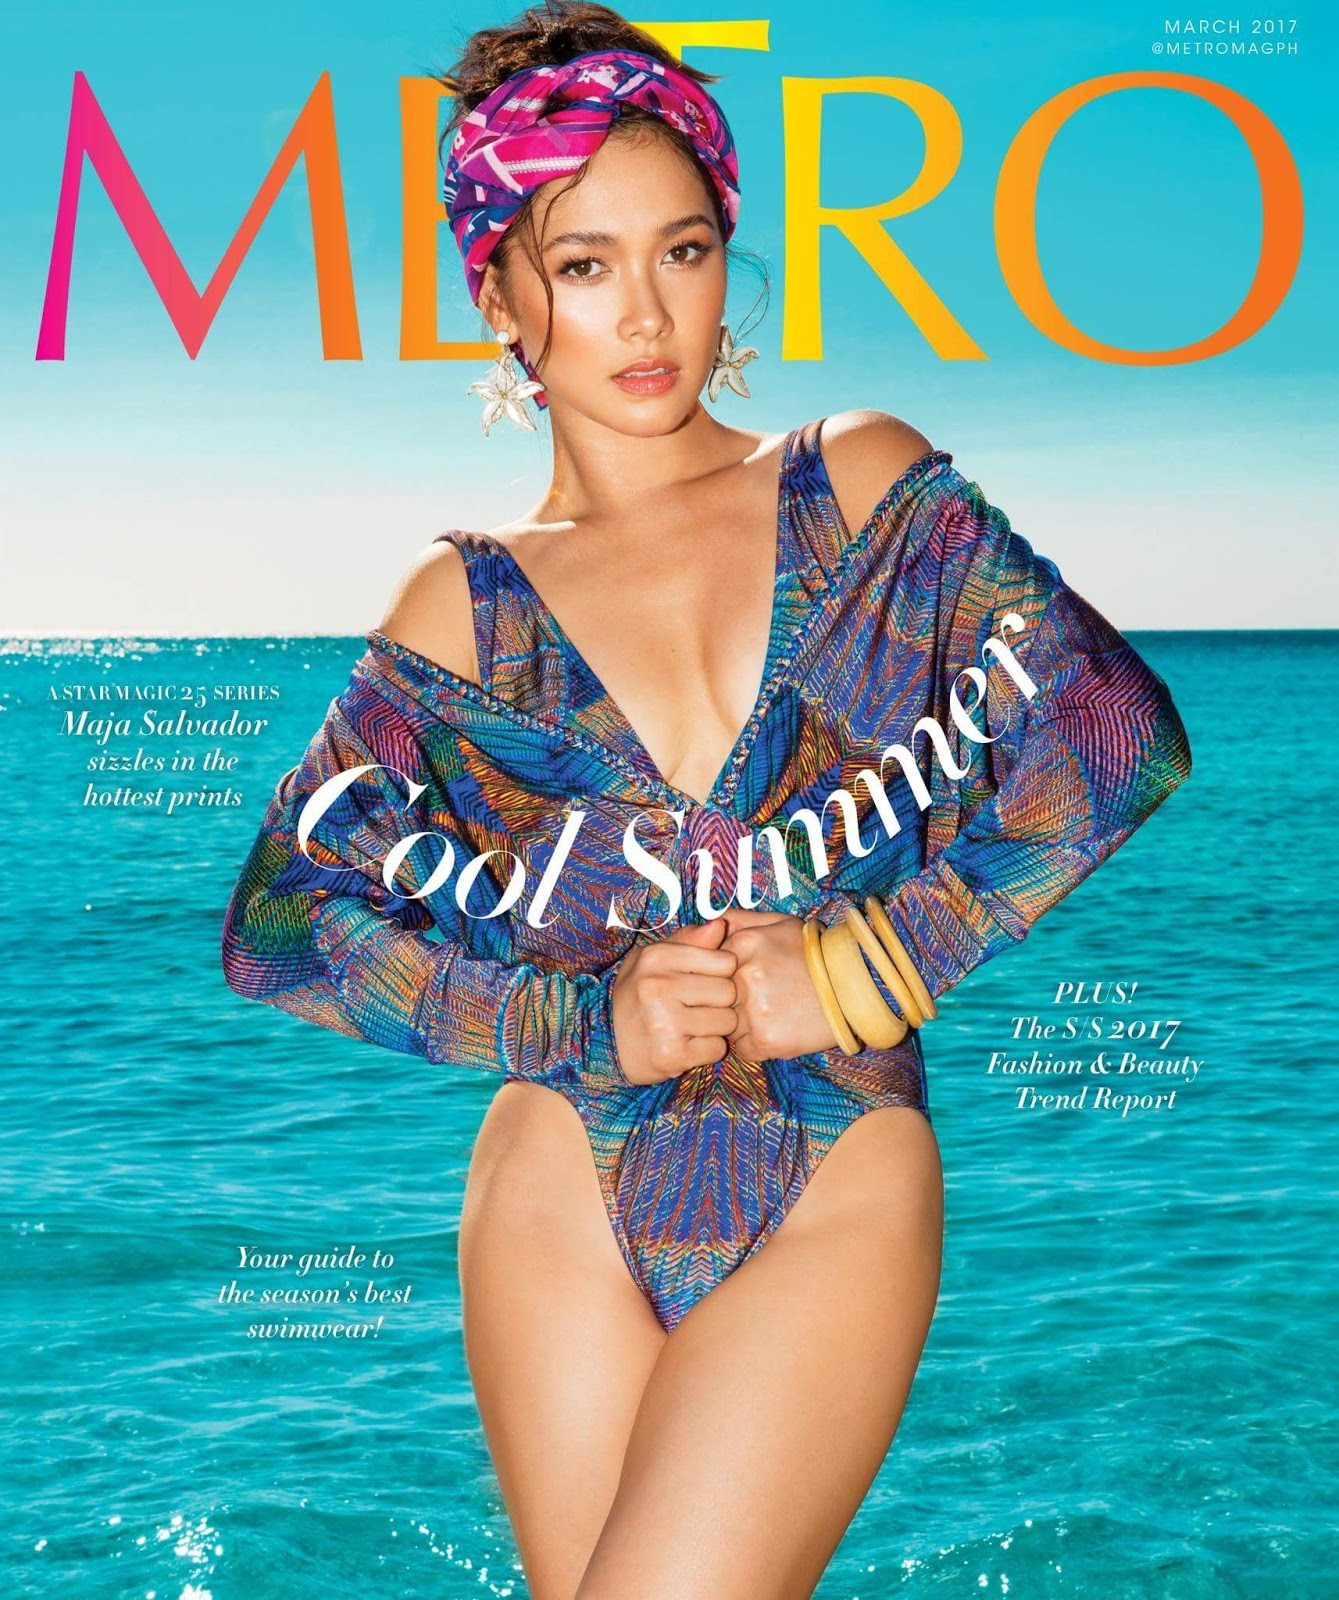 Maja Salvador on the Cover of Metro